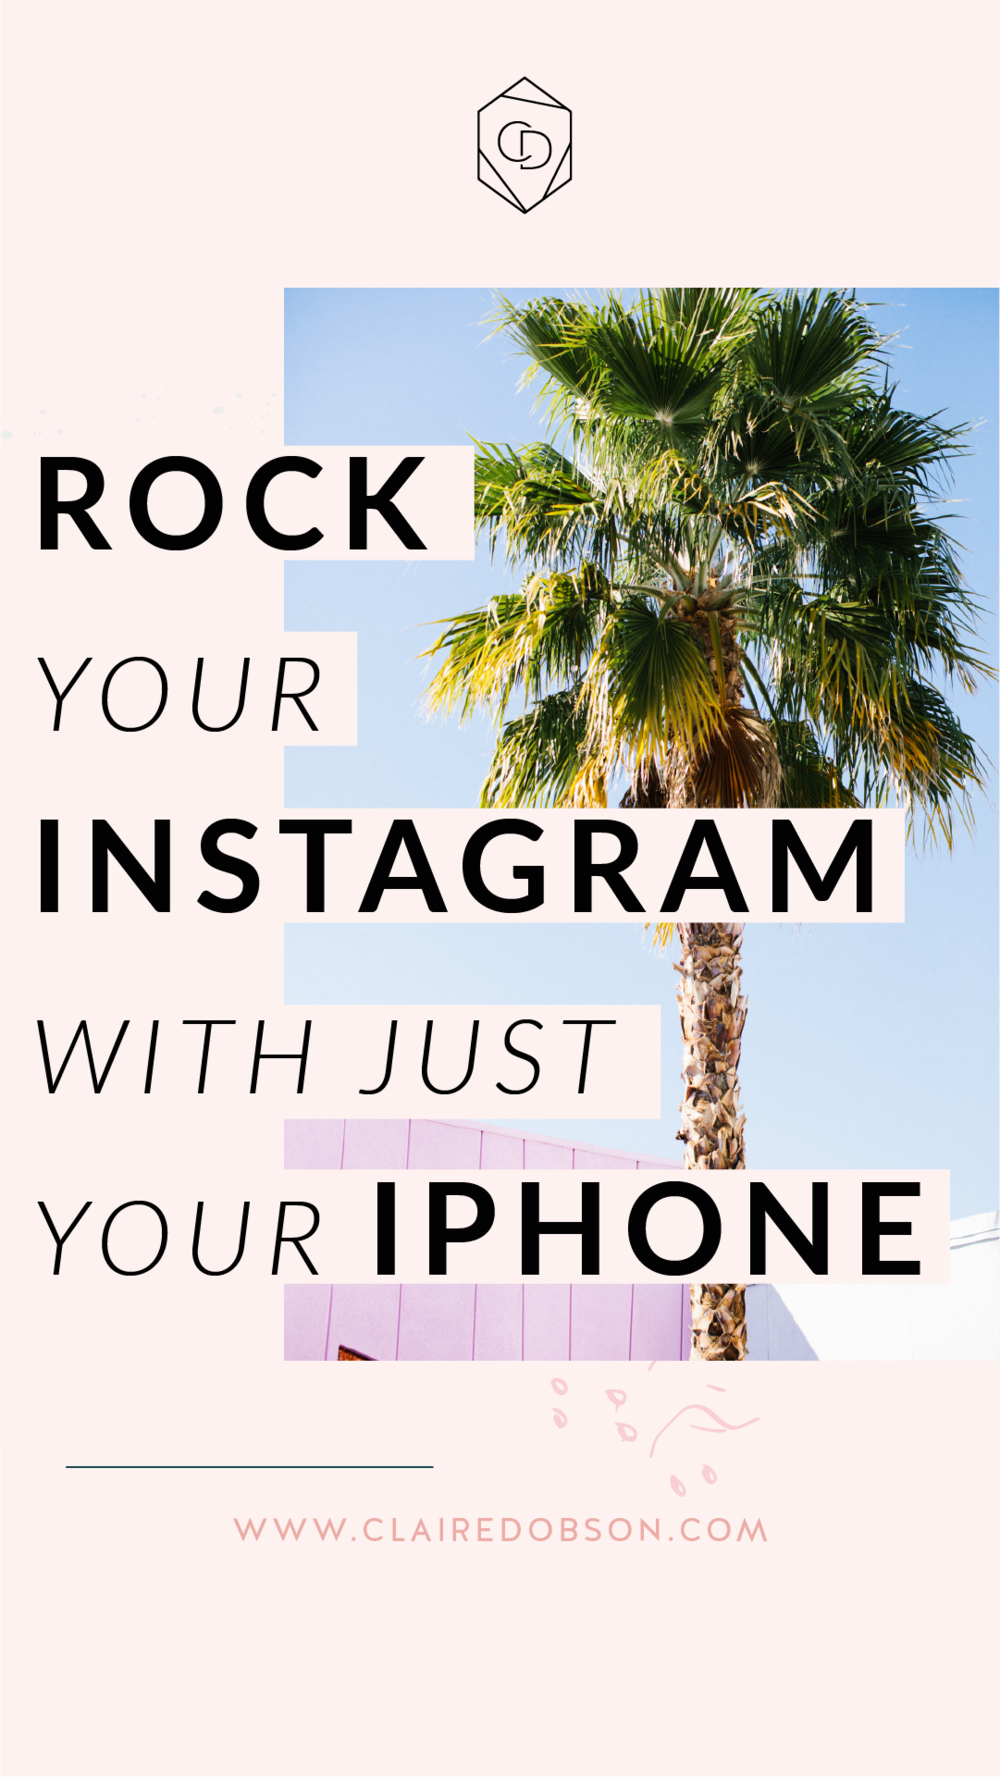 4 quick tips for shooting Instagram photos with your phone. Learn how to take beautiful photos with your iphone and post right to Instagram. The best tips and tricks to take professional looking iphone photos. #instagramtips #photographytips #photoediting #socialmediamarketing